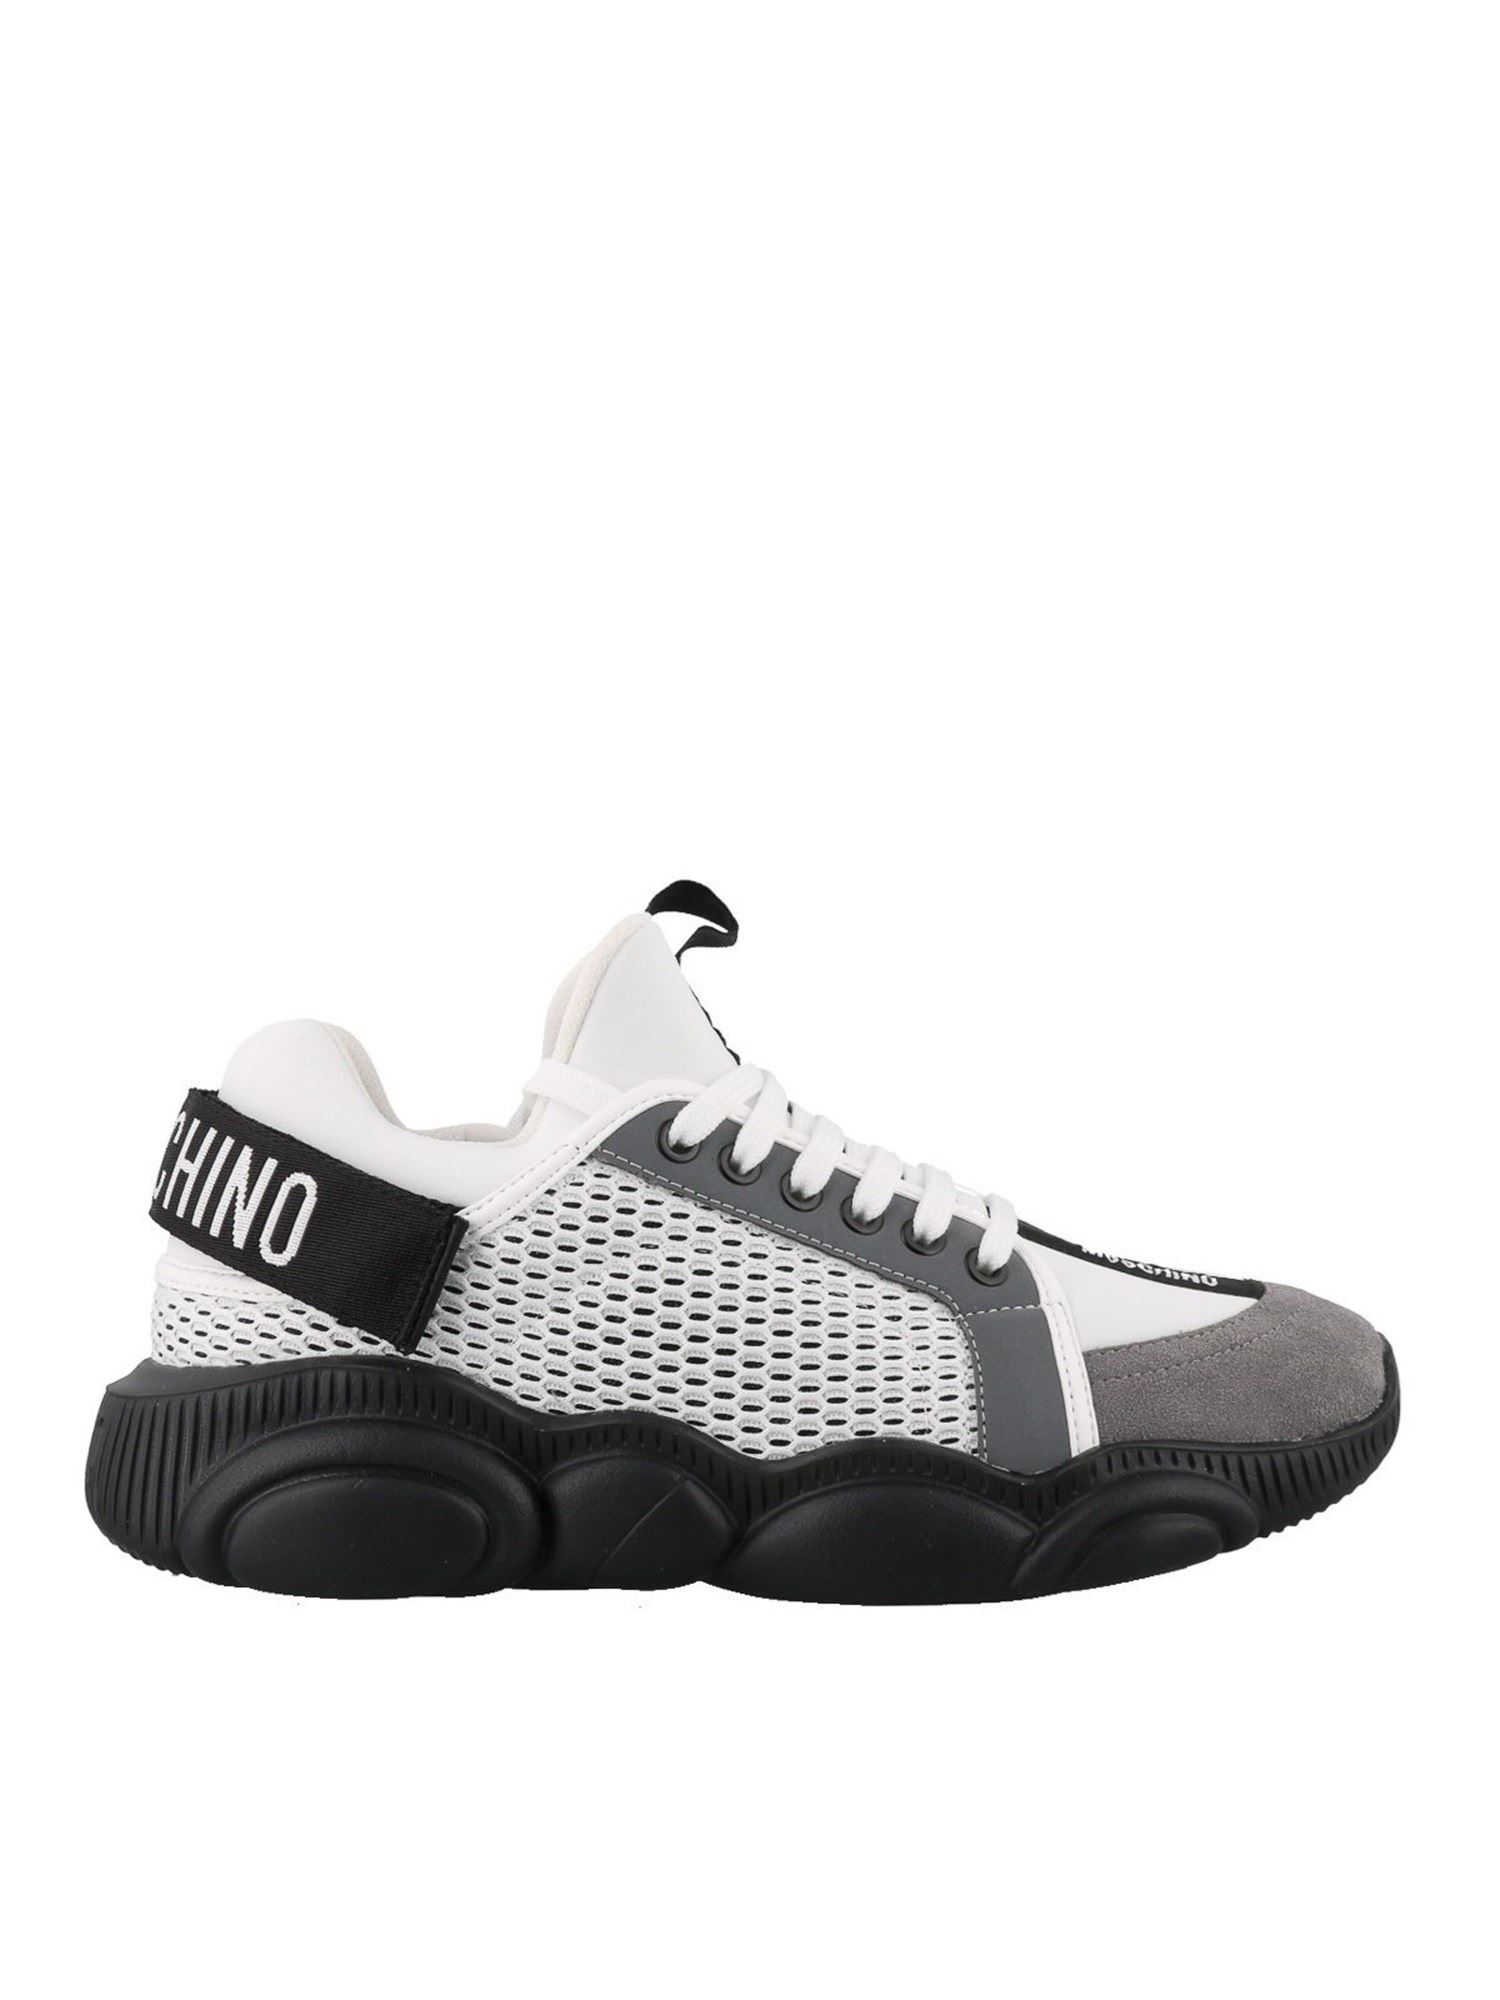 MOSCHINO TEDDY WHITE SNEAKERS WITH SUEDE INSERTS